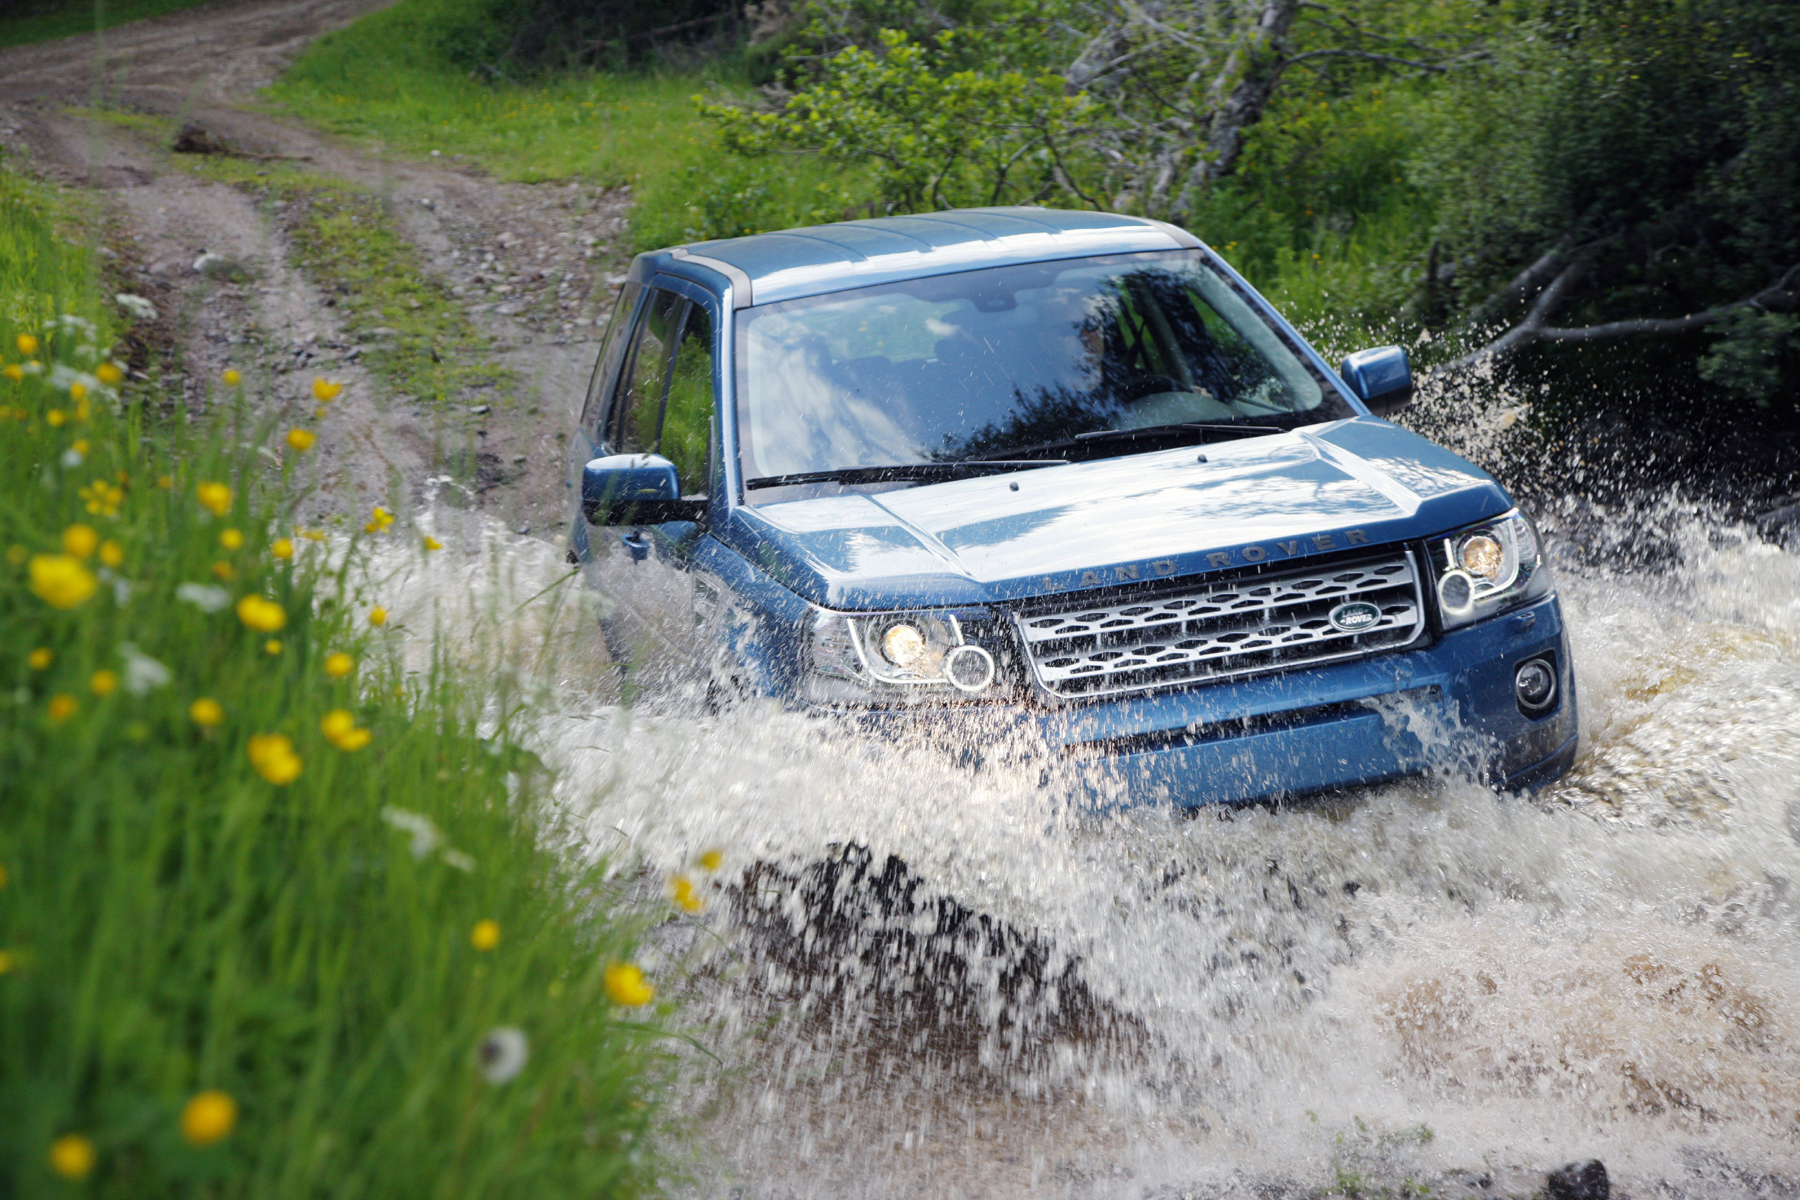 Manufacturer photo: Land Rover has given the 2013 LR2 a complete revision, delivering even higher levels of comfort, convenience and driving enjoyment